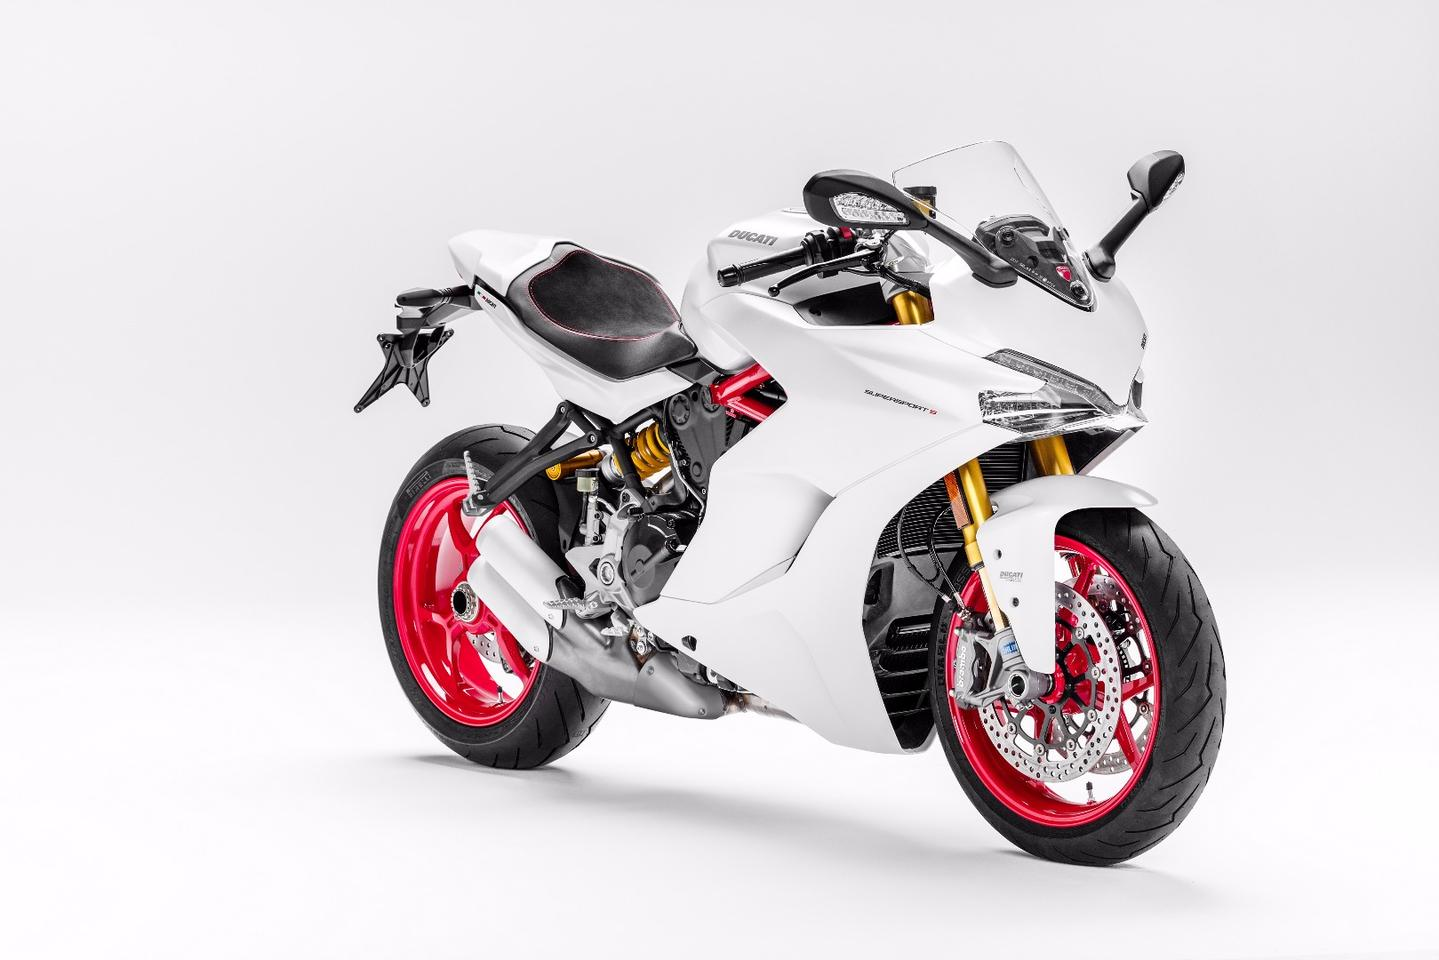 The 2017 Ducati SuperSport S will be the only version available in Star White Silk color